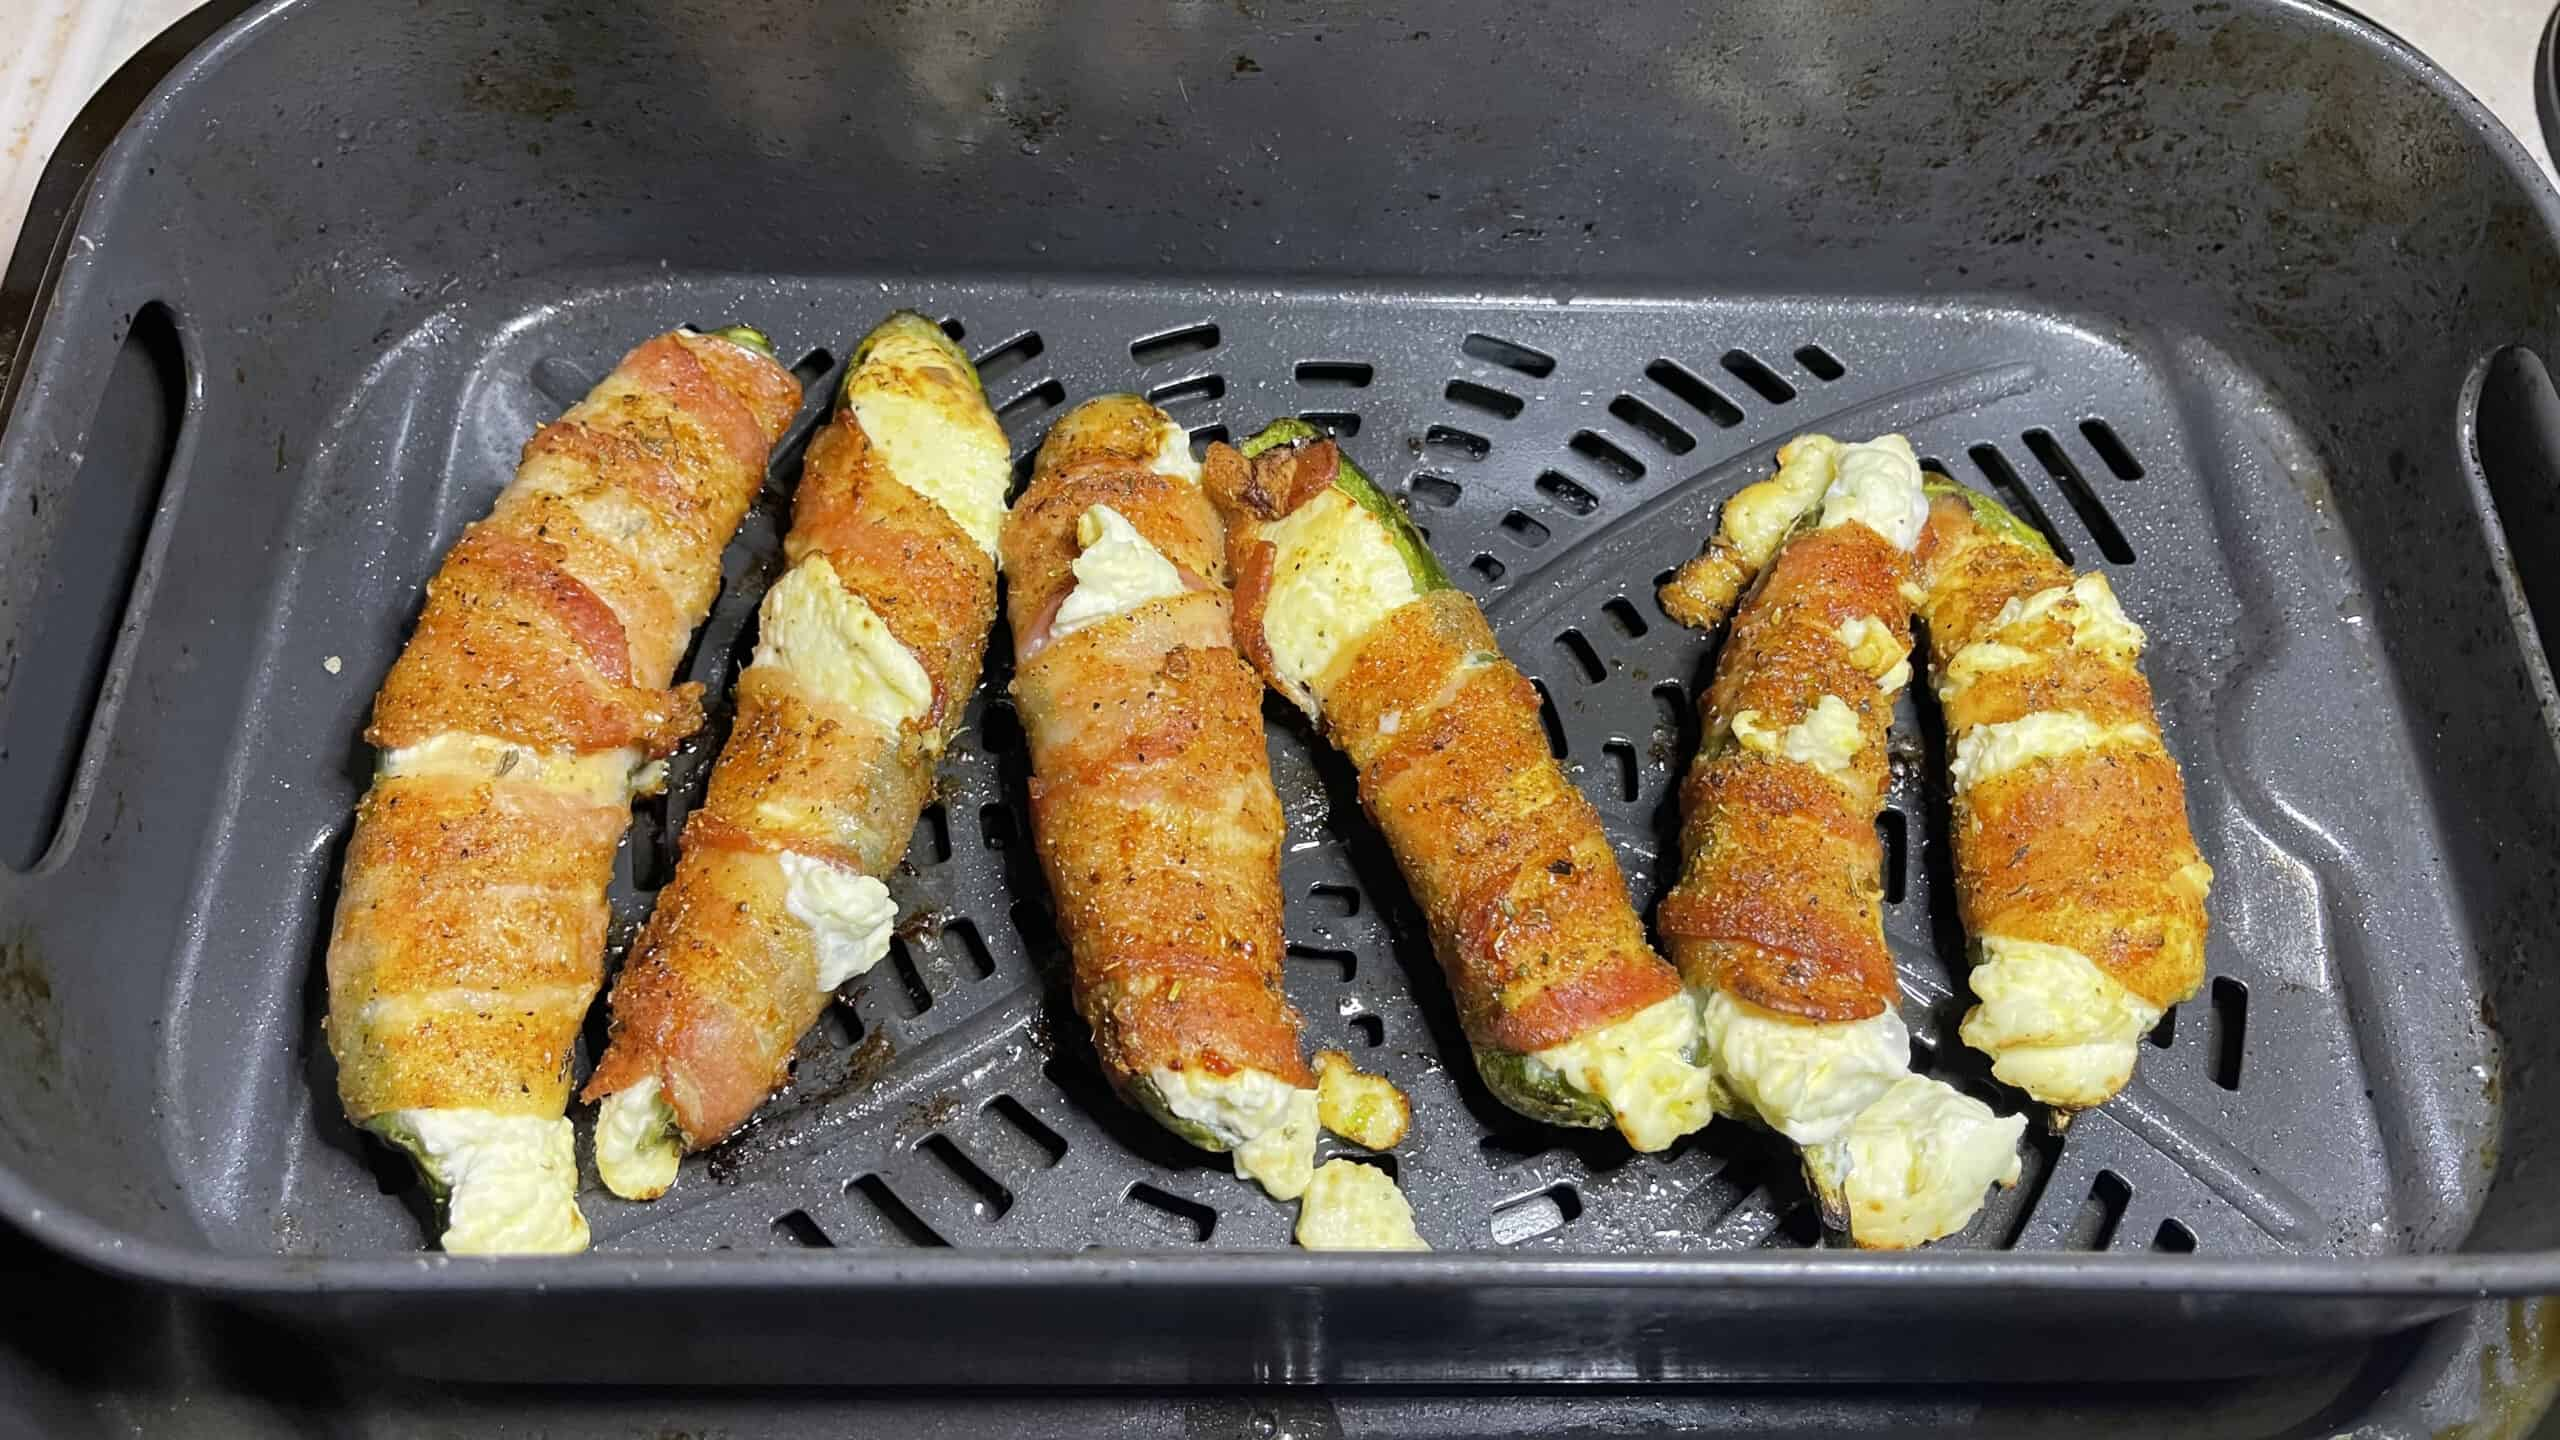 poppers cooked in air fryer